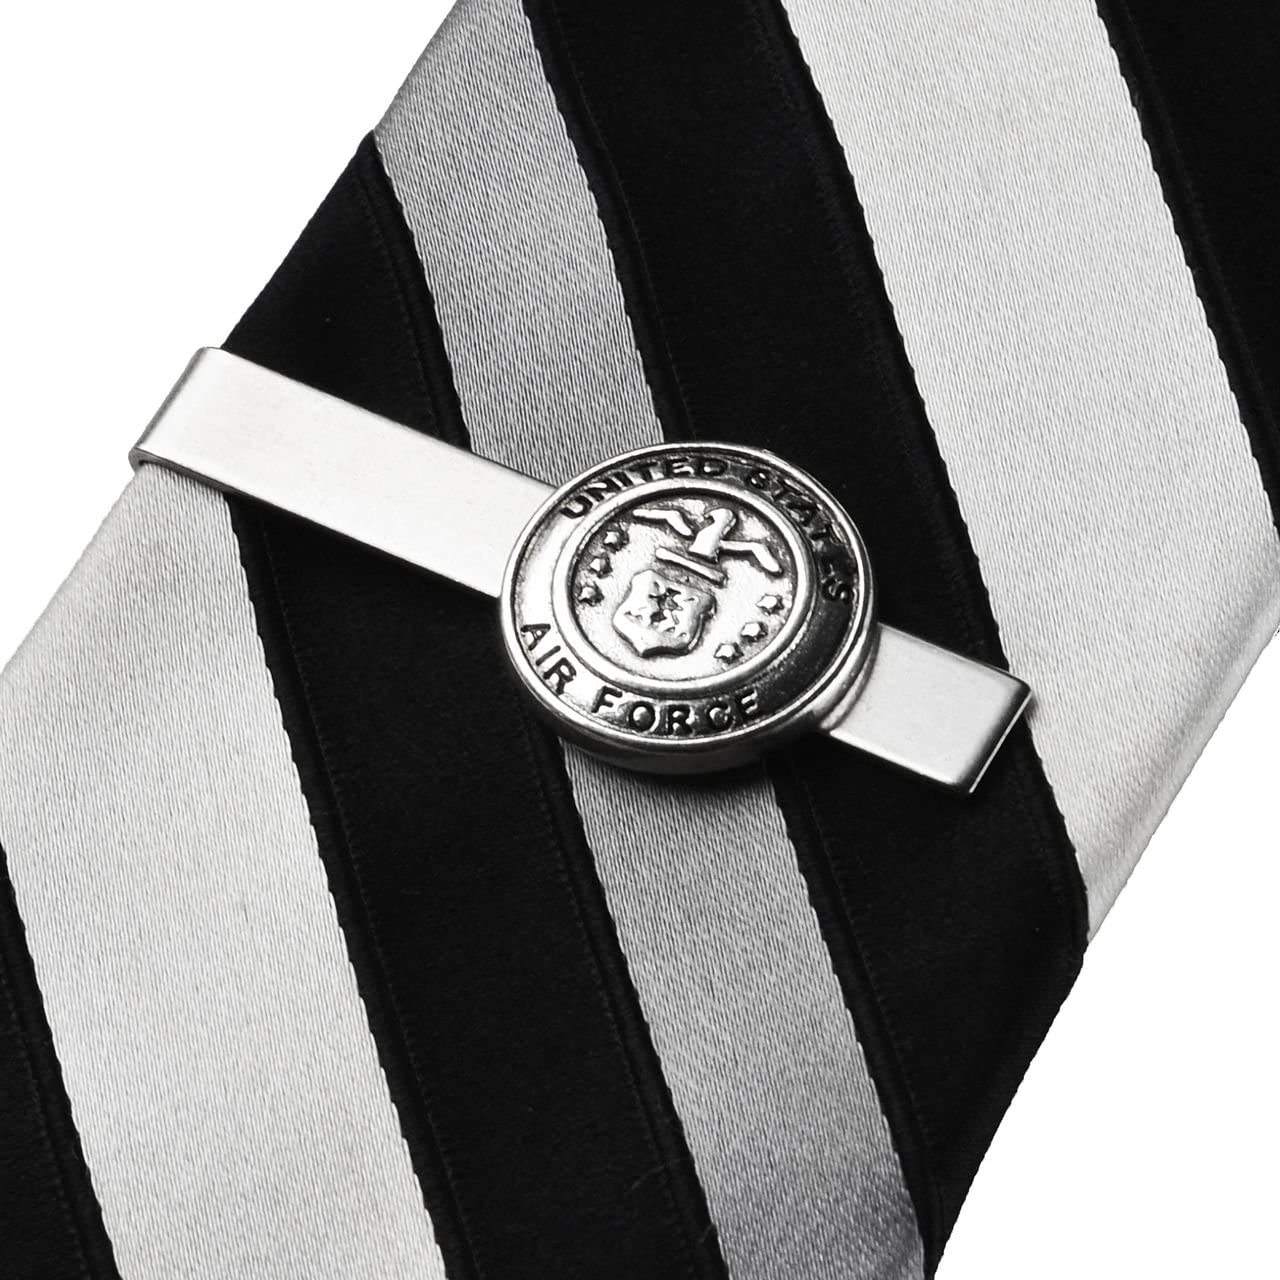 Quality Handcrafts Guaranteed Air Force Tie Clip